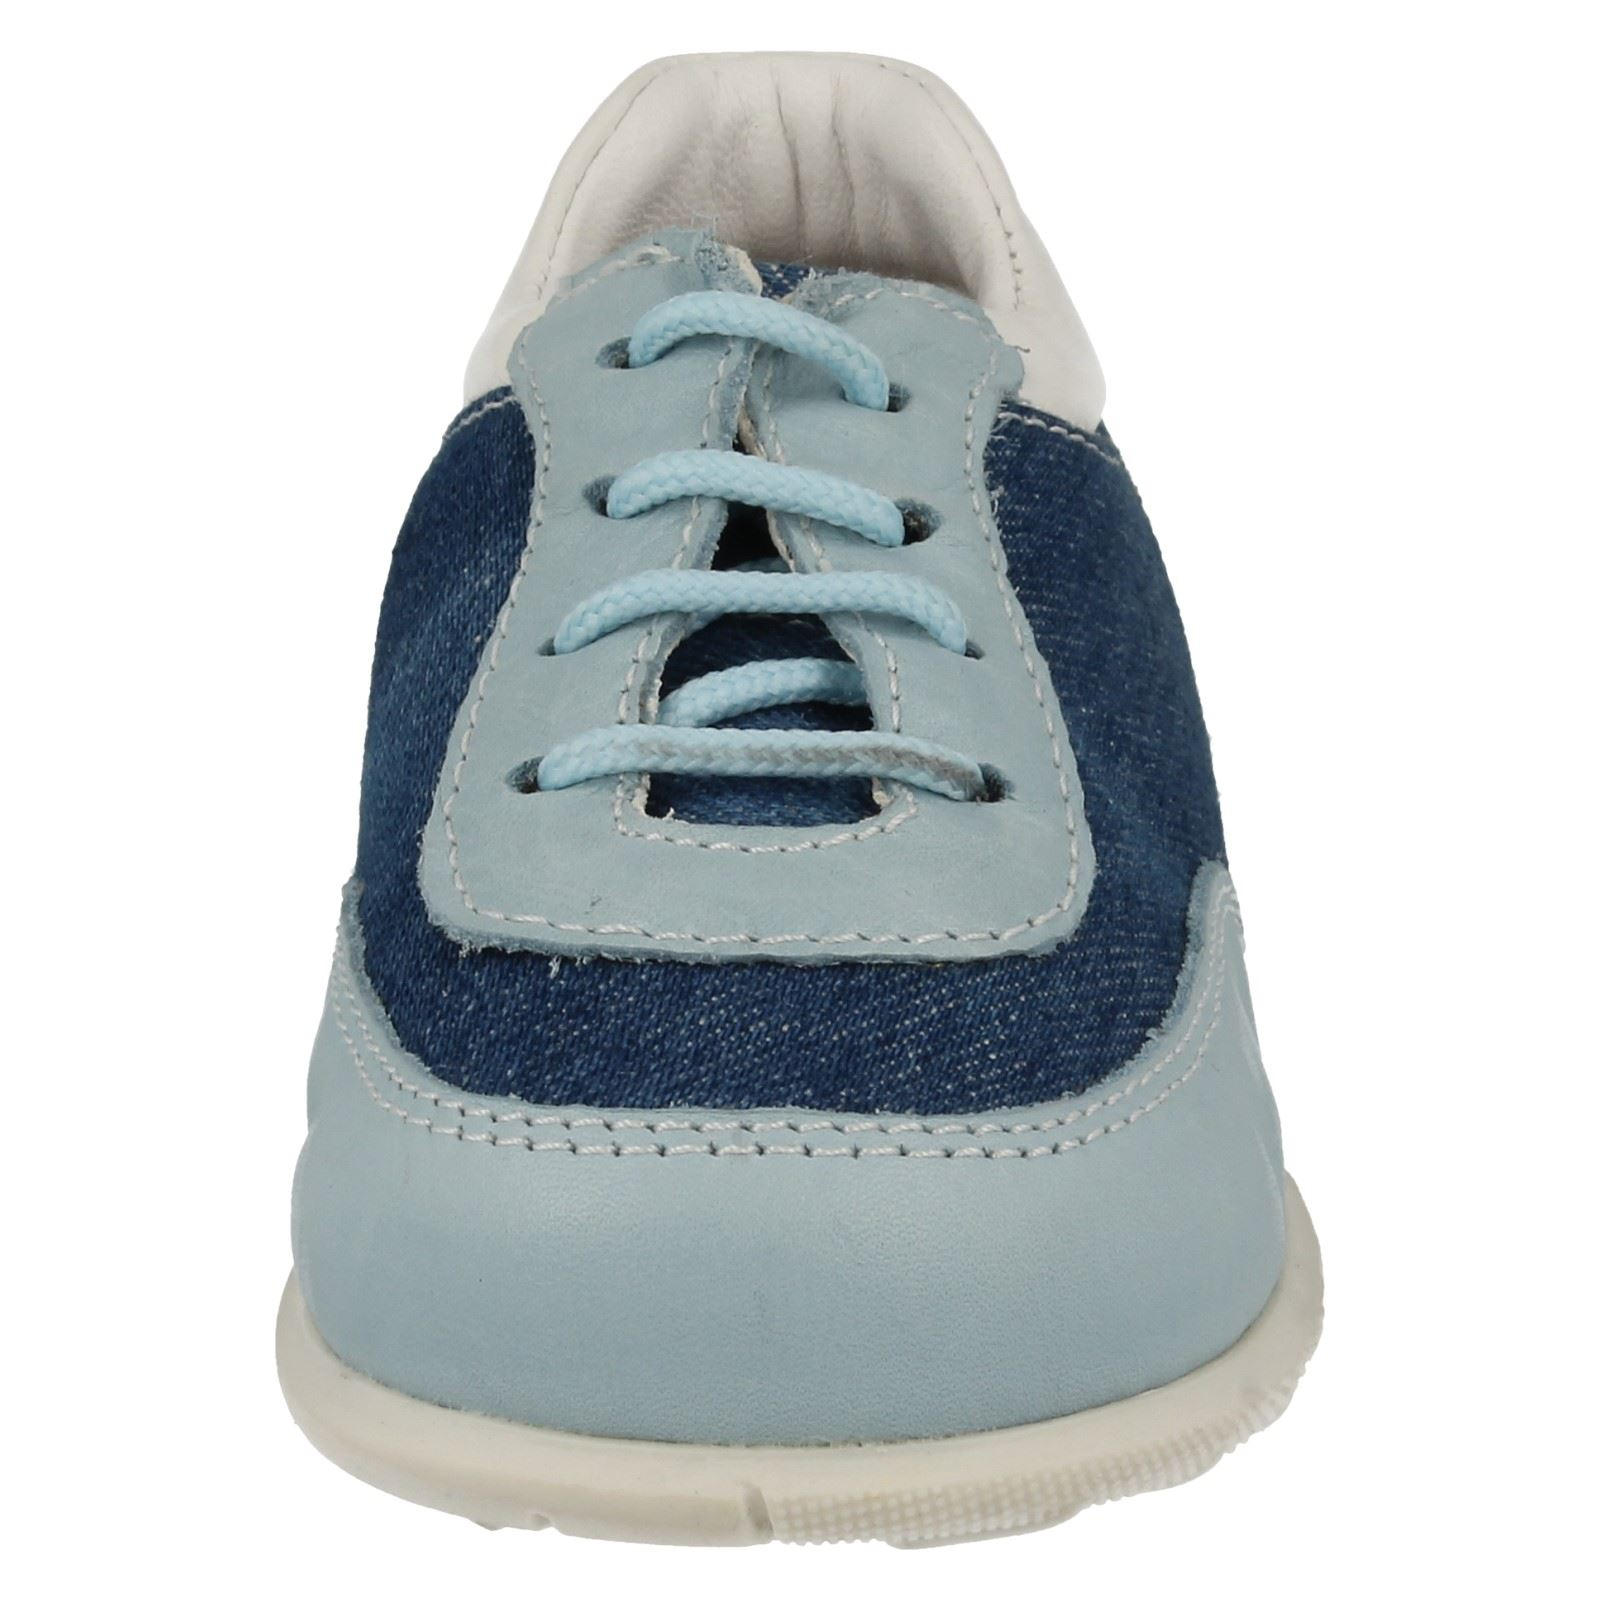 Ale azul Casual Boys Scholl Dr Shoes Jeans qRPI8wx